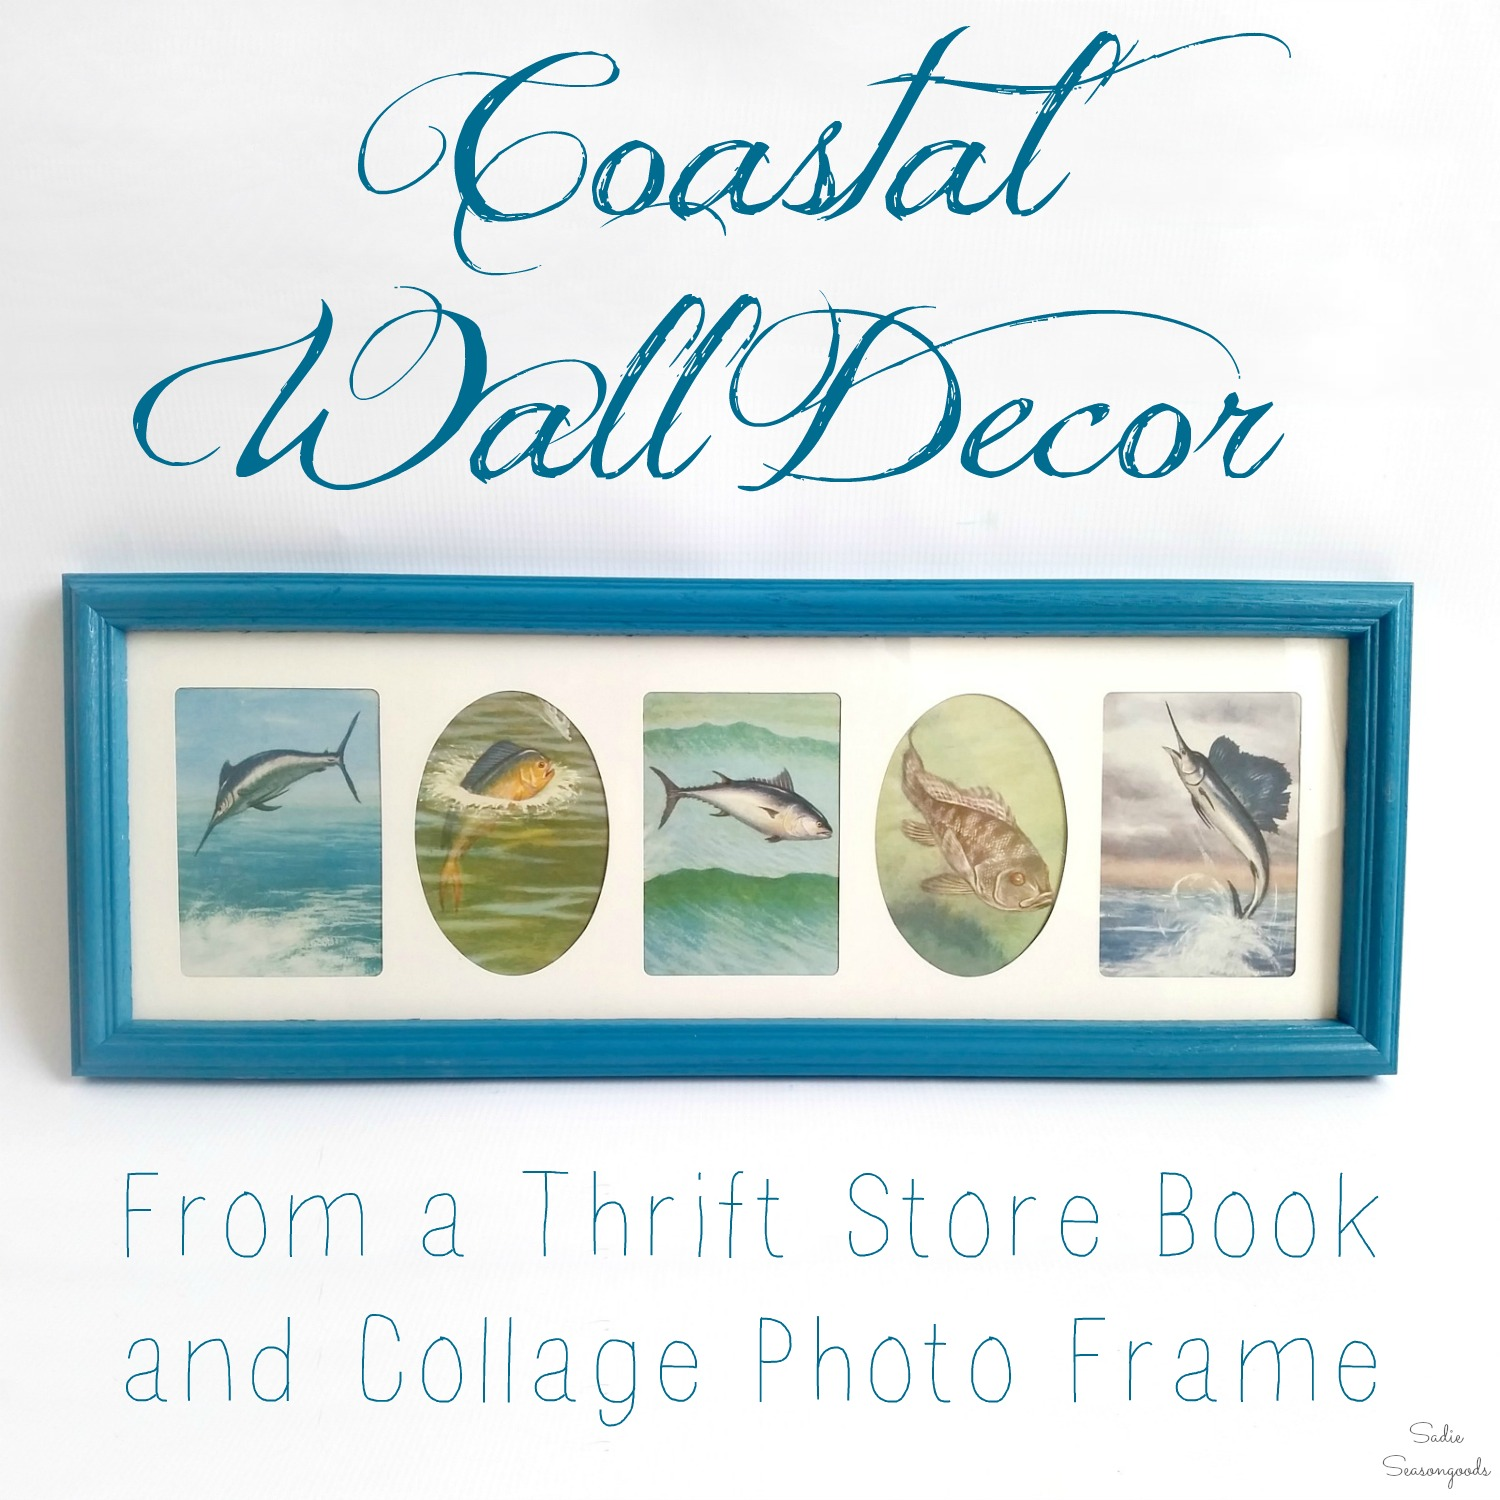 Coastal Wall Decor from a Thrift Store Book